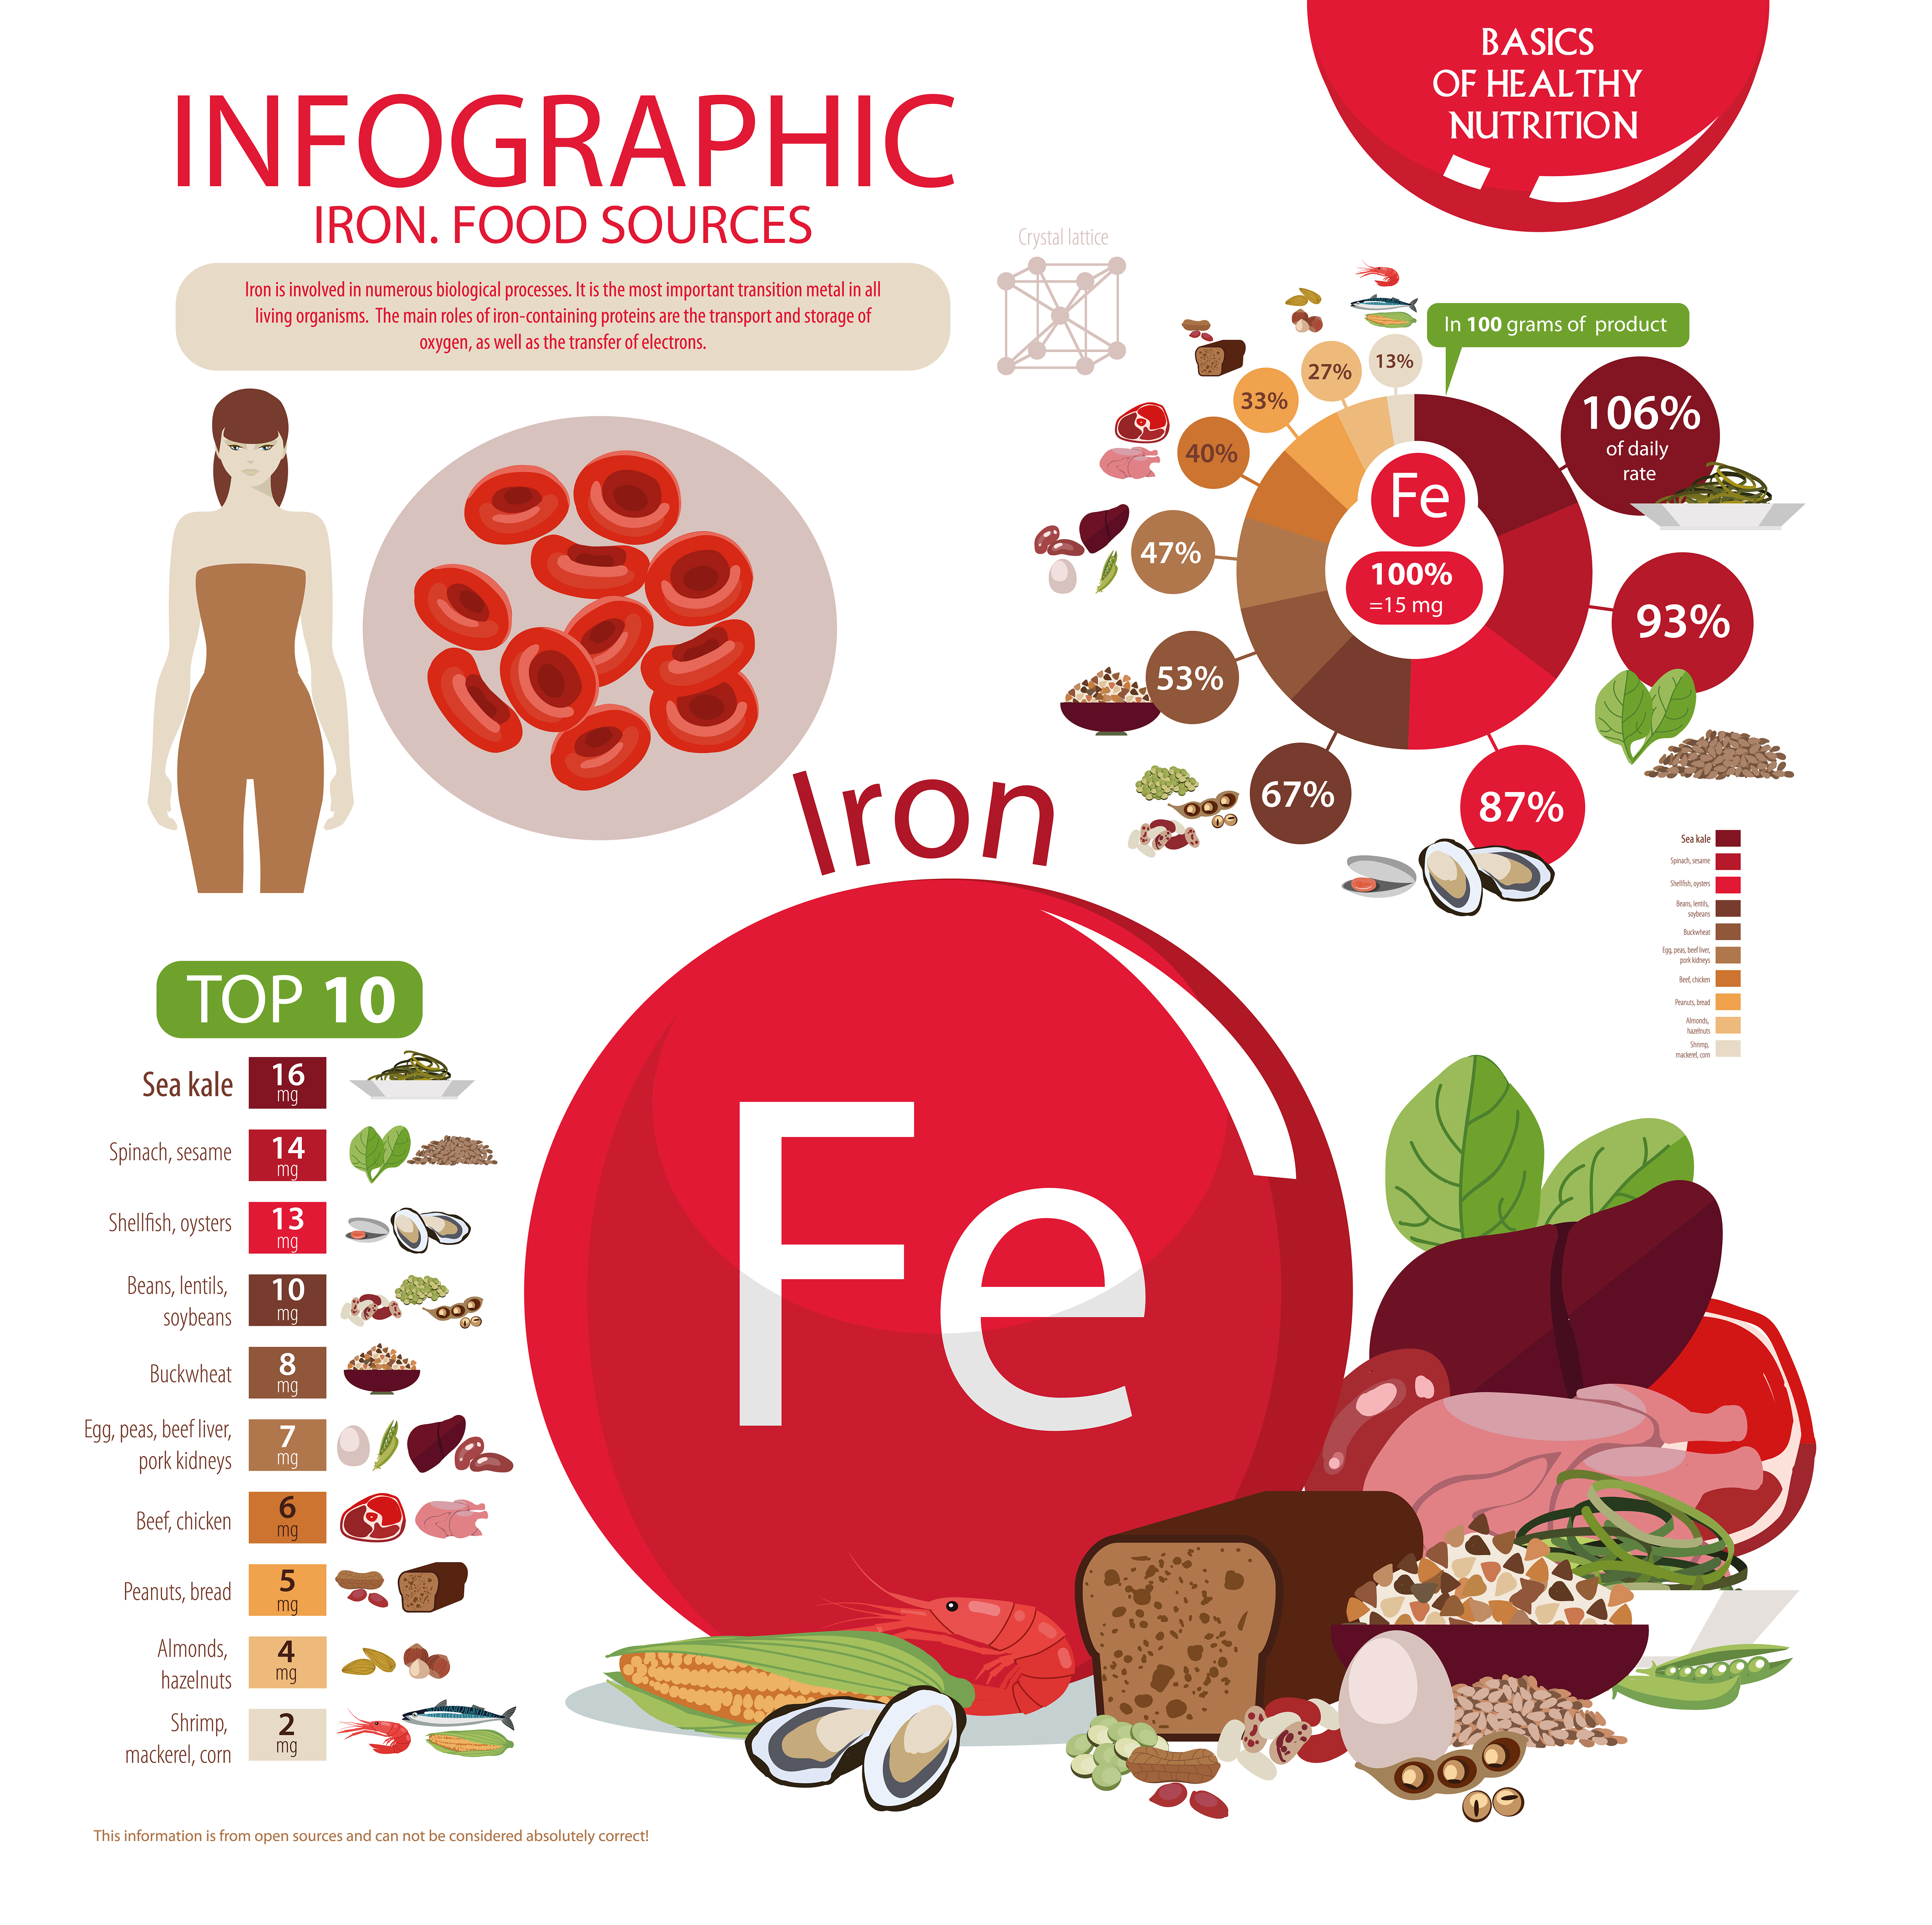 Basic information about iron. Benefits, dosages and sources - infographic